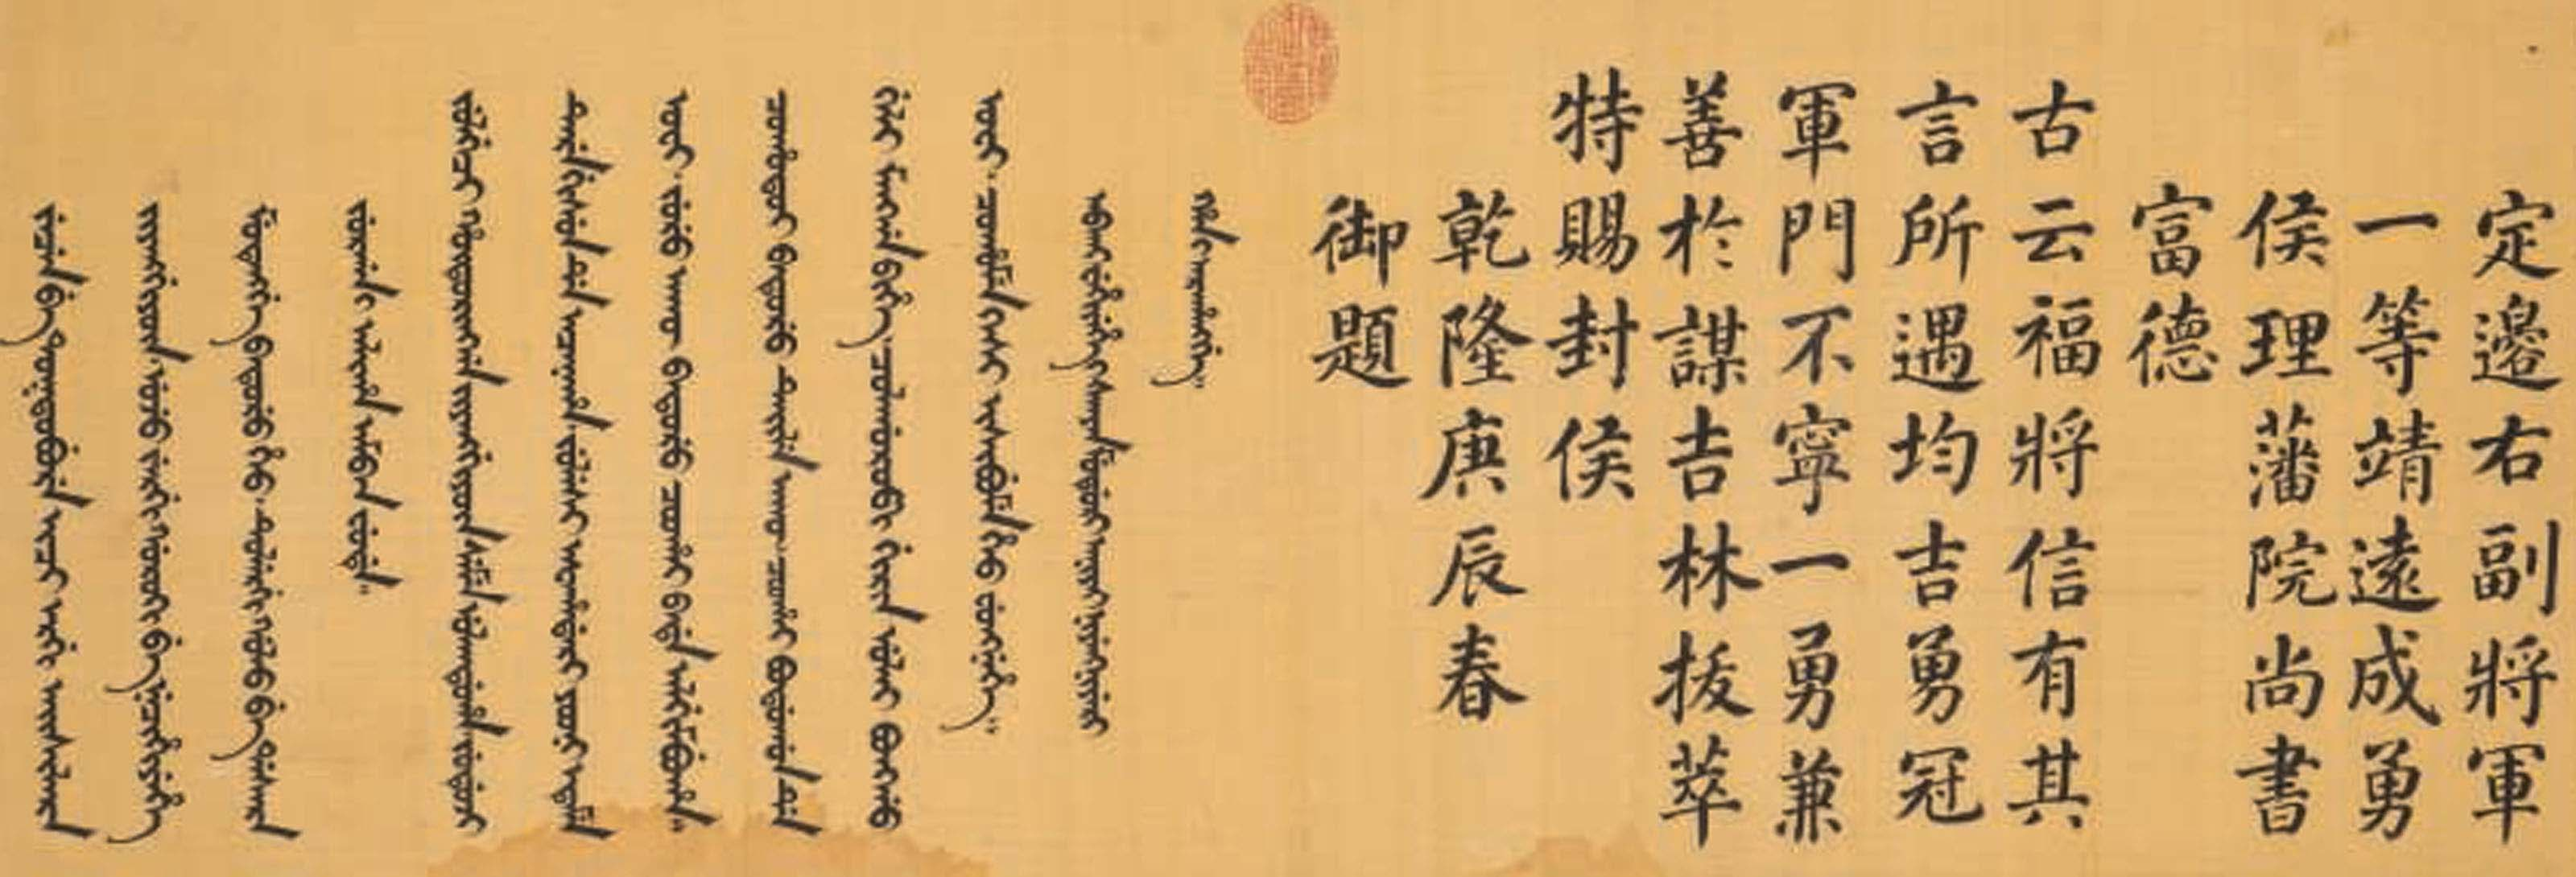 A SECTION OF AN IMPERIAL EDICT